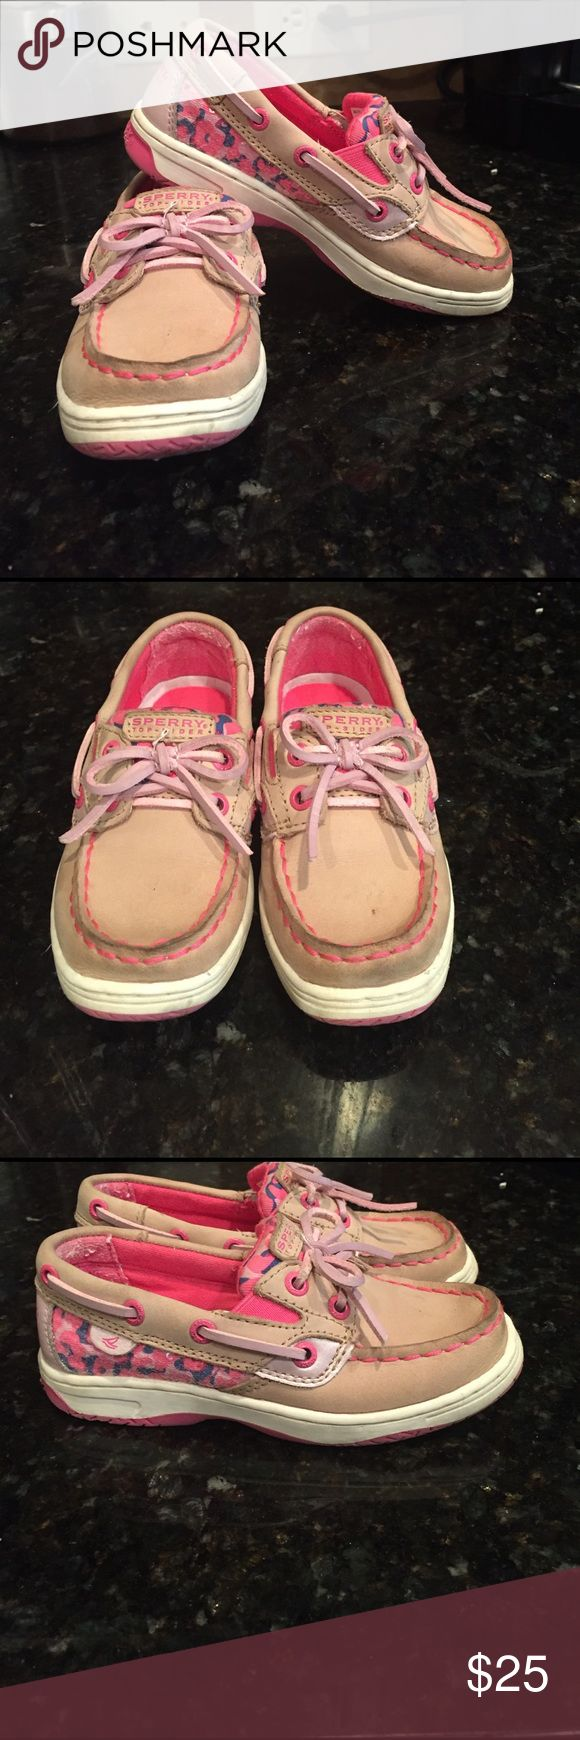 Girls Sperry shoes size 10.5 Adorable pair of girls leather Sperry  shoes. Worn once. See pics for exact condition. From clean pet and smoke free home. Sperry Shoes